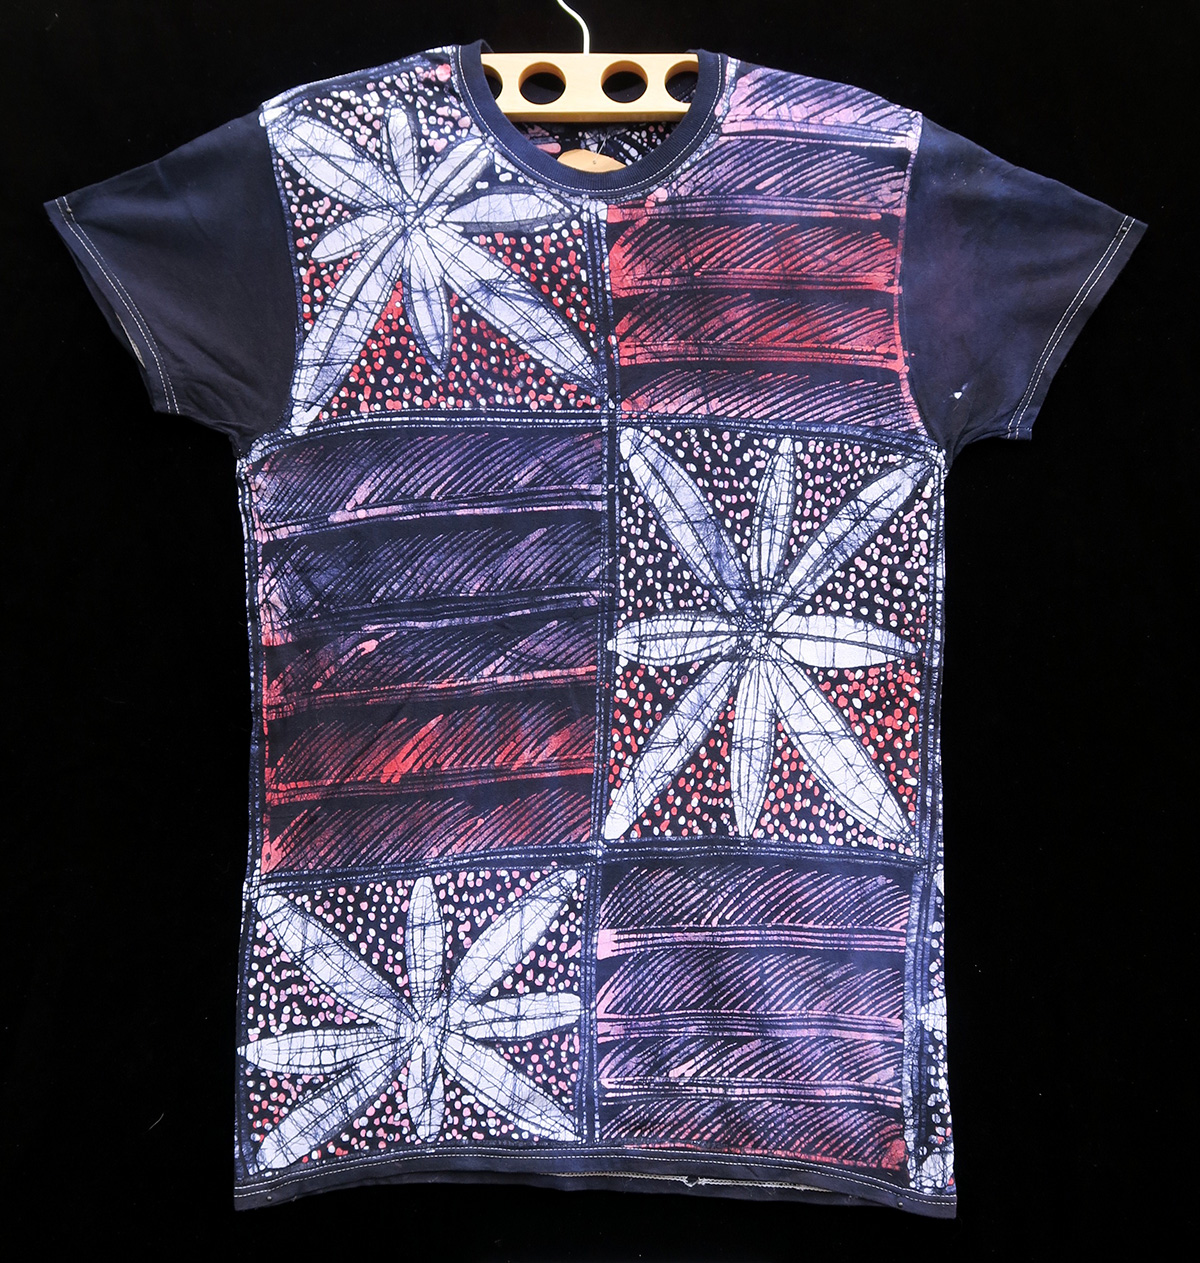 Batik T-shirt By Gasali Adeyemo - Small